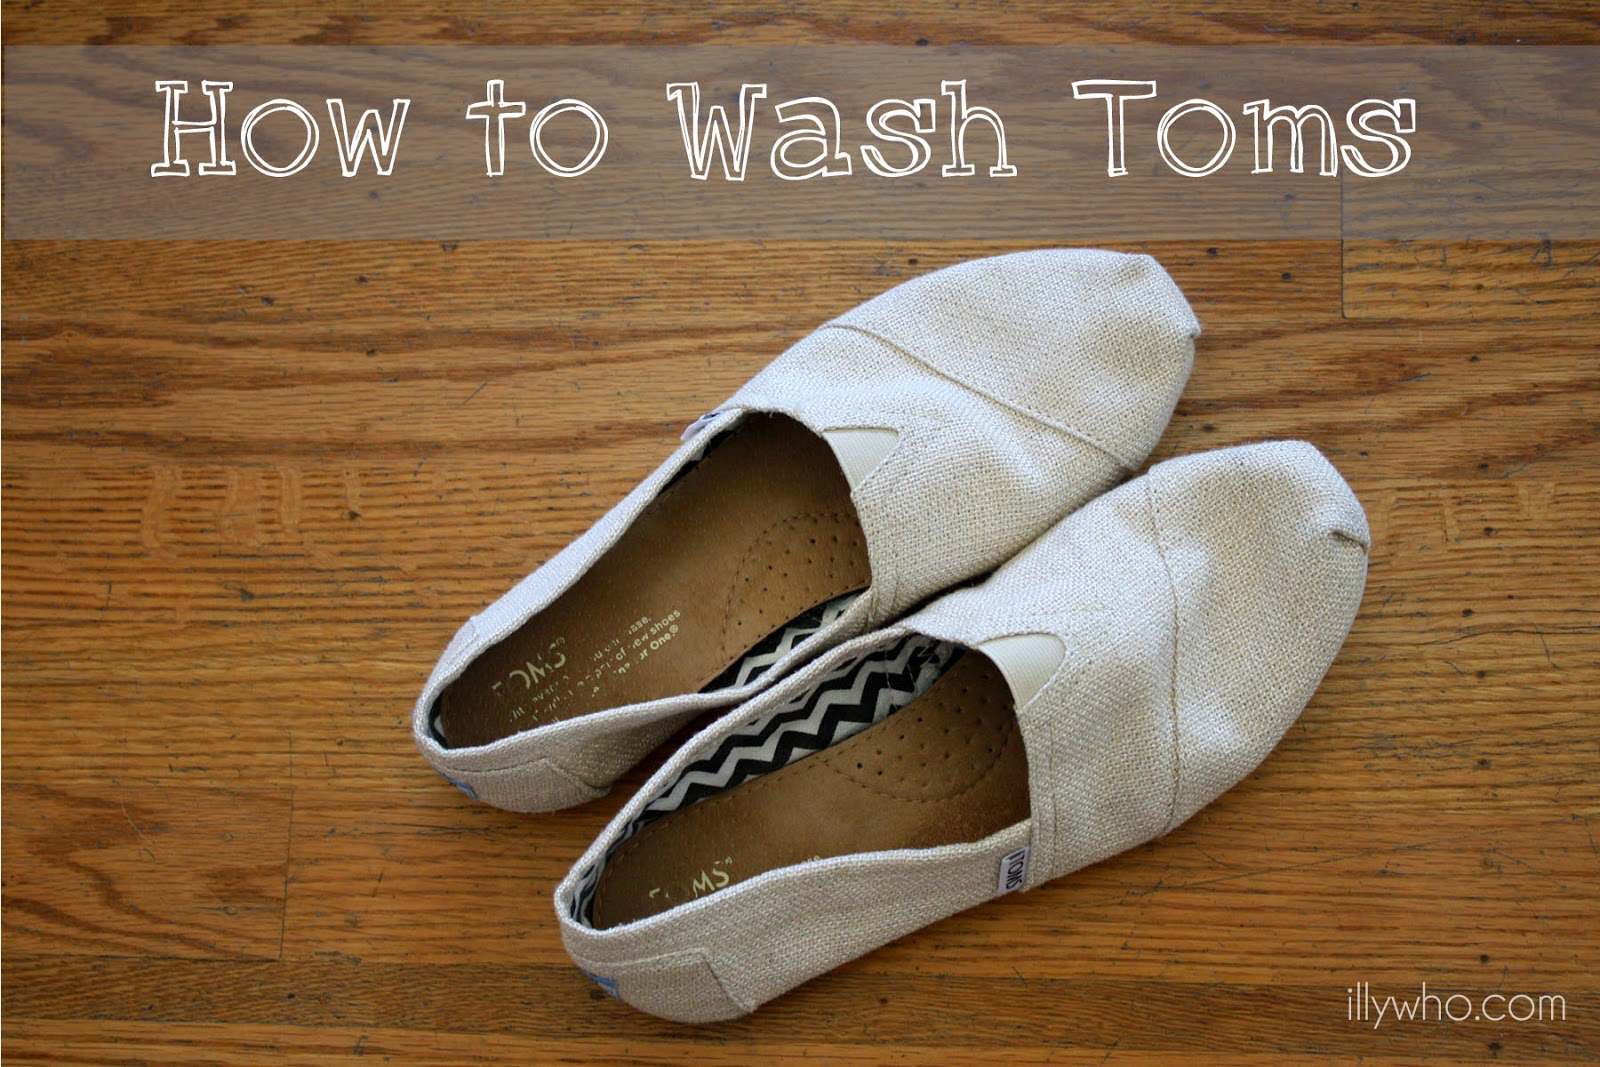 how to wash or clean toms